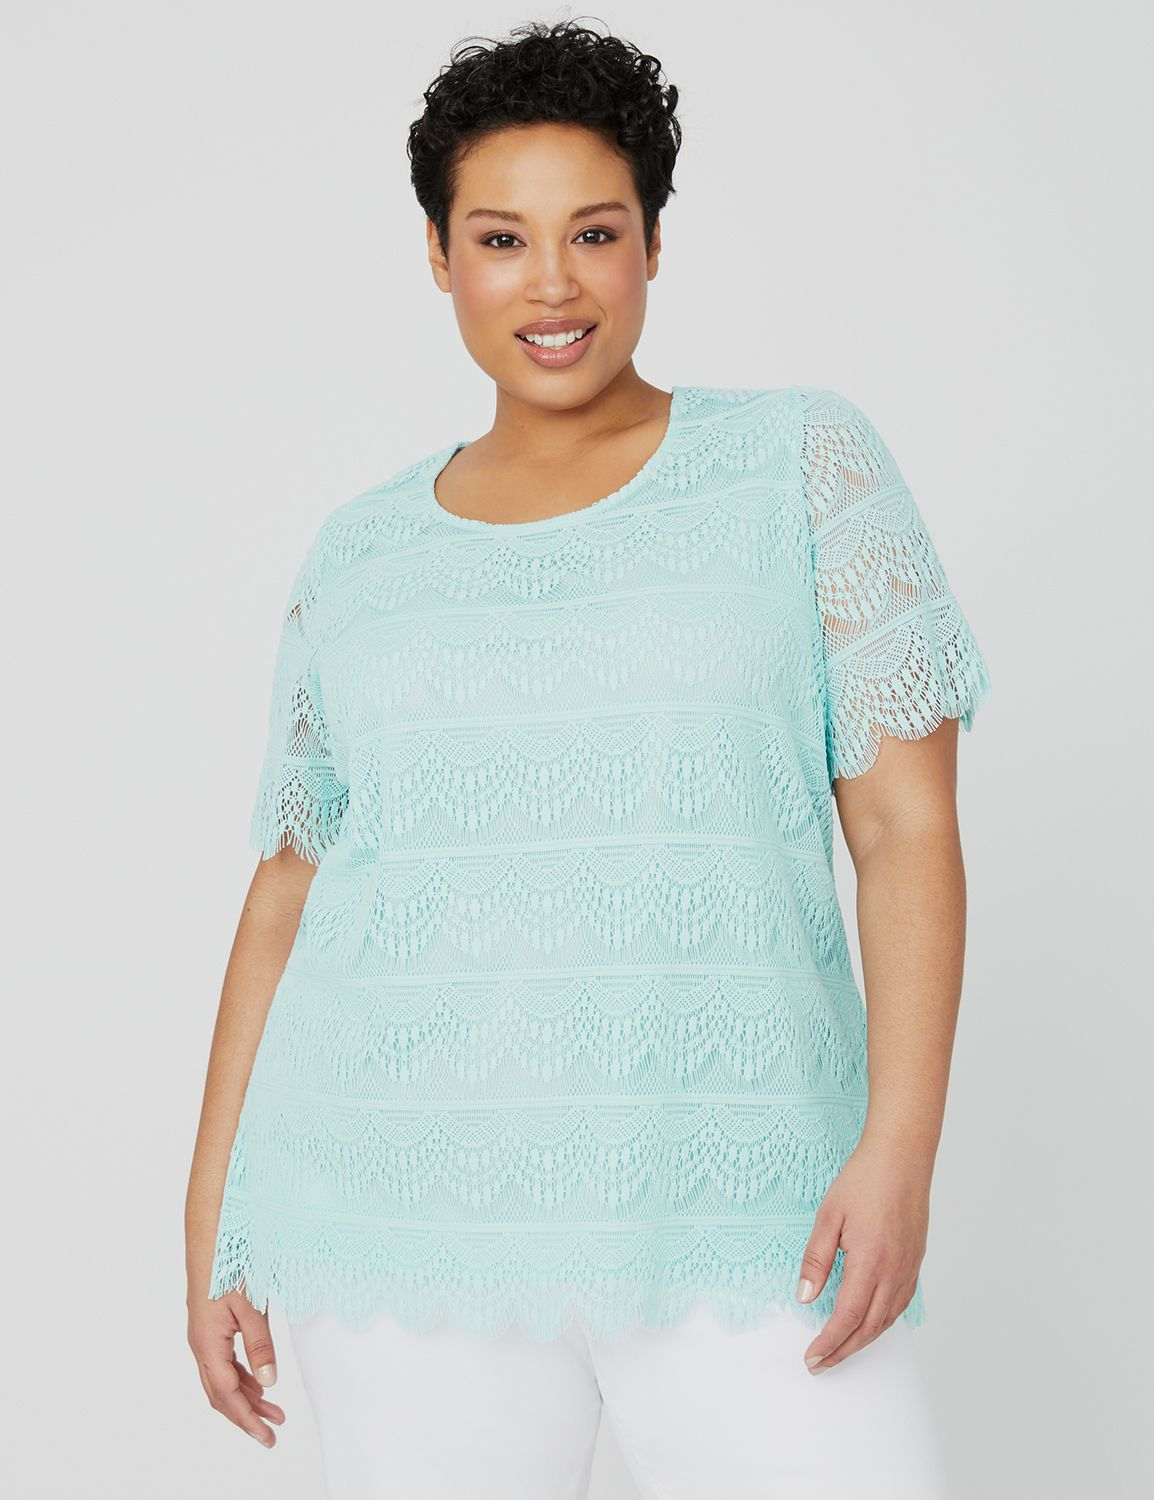 Waves of Lace Top 1087830 SCALLOP EDGE ALLOVER LACE MP-300100094